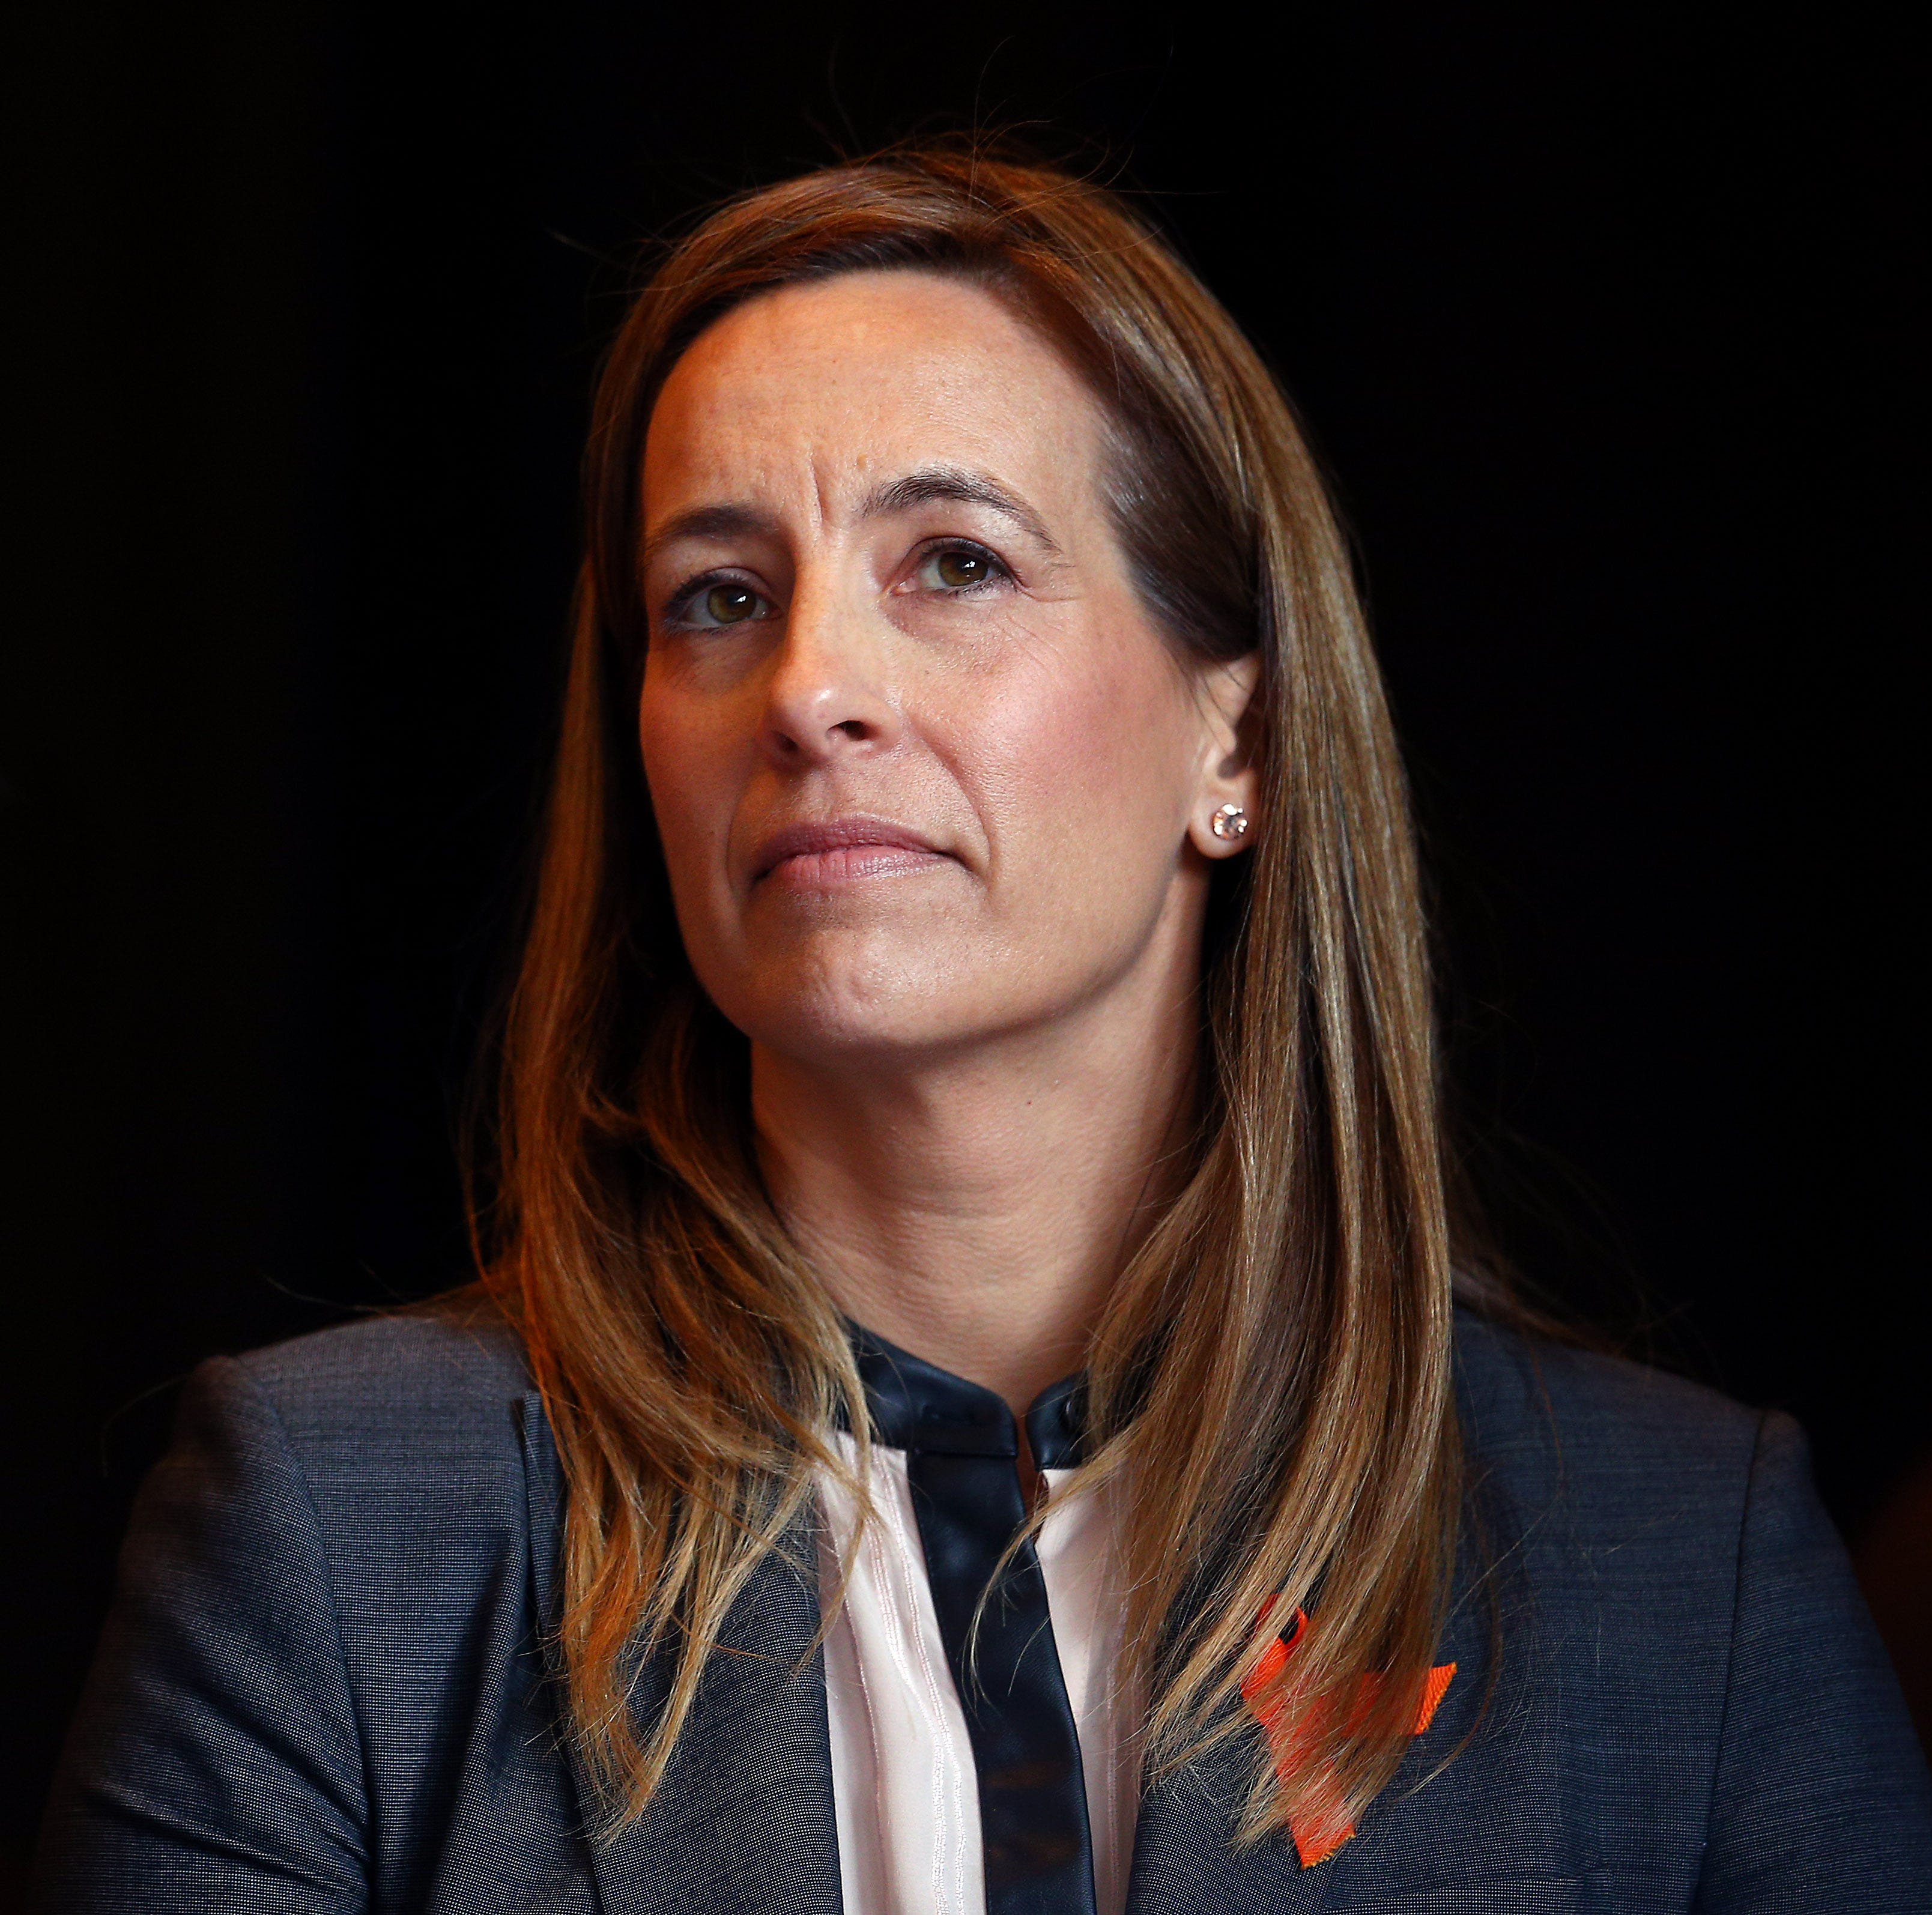 Mikie Sherrill takes oath, declines Congress paycheck during government shutdown